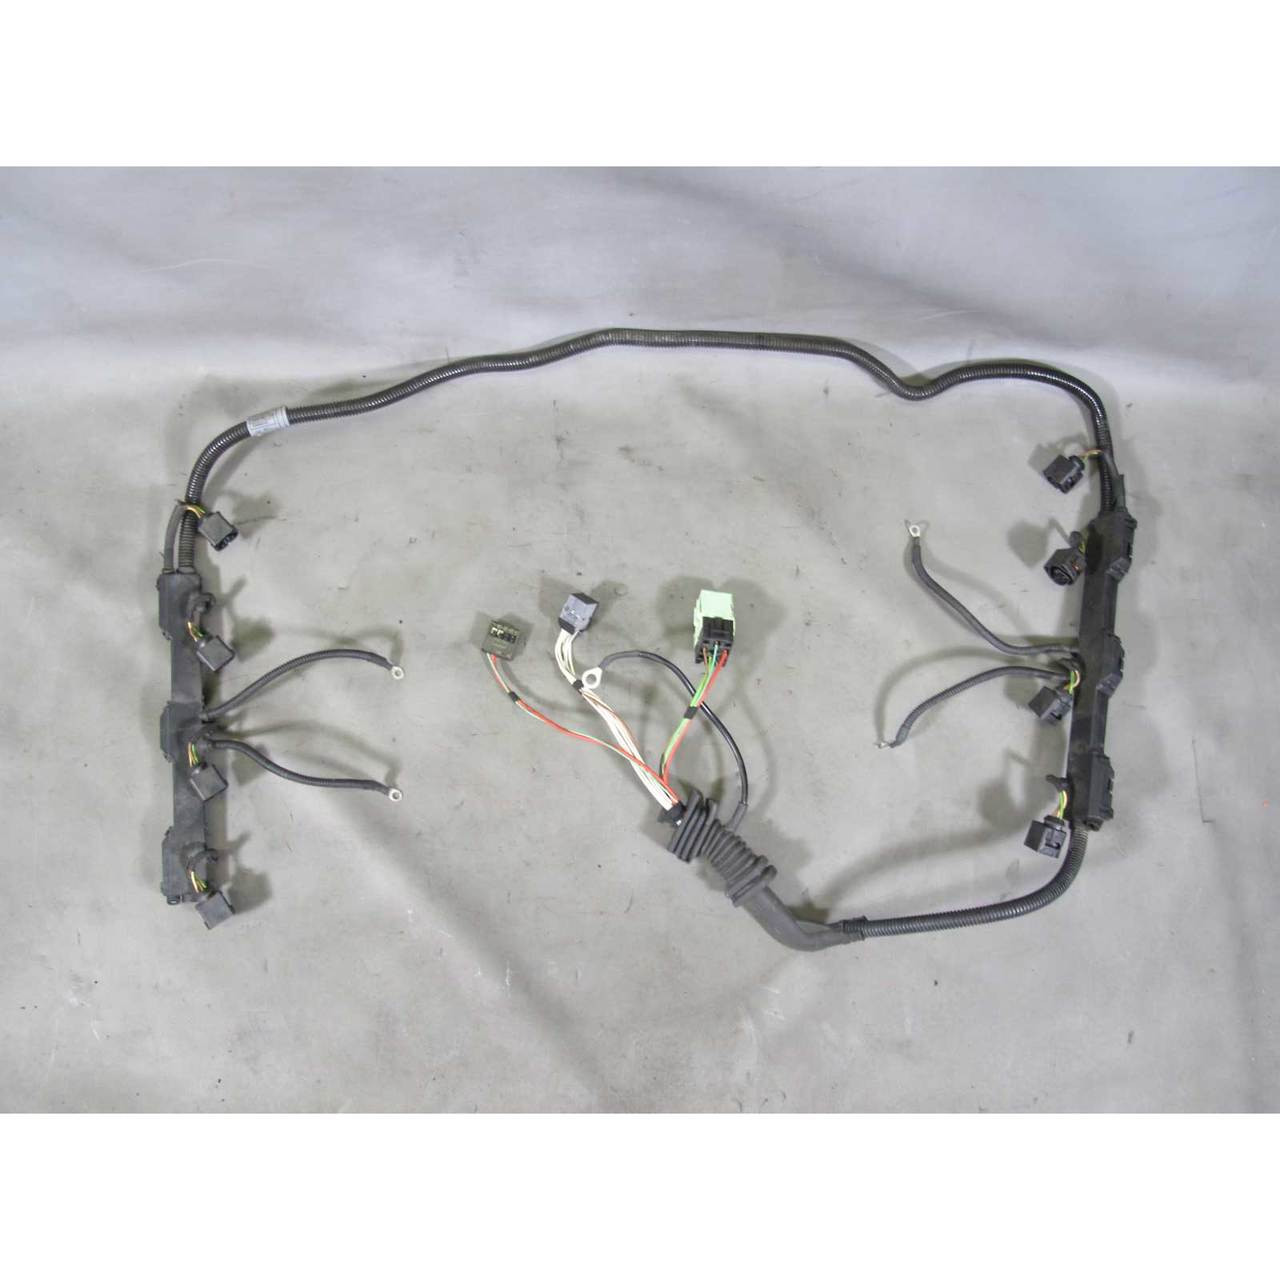 2007-2010 BMW E70 X5 4.8i N62TU V8 Ignition Coil Wiring Harness USED on bosch wire harness, chrysler wire harness, kawasaki wire harness, gmc wire harness, caterpillar wire harness, automotive wire harness, tesla wire harness, chevrolet wire harness, vw wire harness, mercury wire harness, sony wire harness, alpine wire harness, dodge truck wire harness, mclaren wire harness, corvette wire harness, mopar wire harness, freightliner wire harness, nissan wire harness, ford wire harness, daihatsu wire harness,